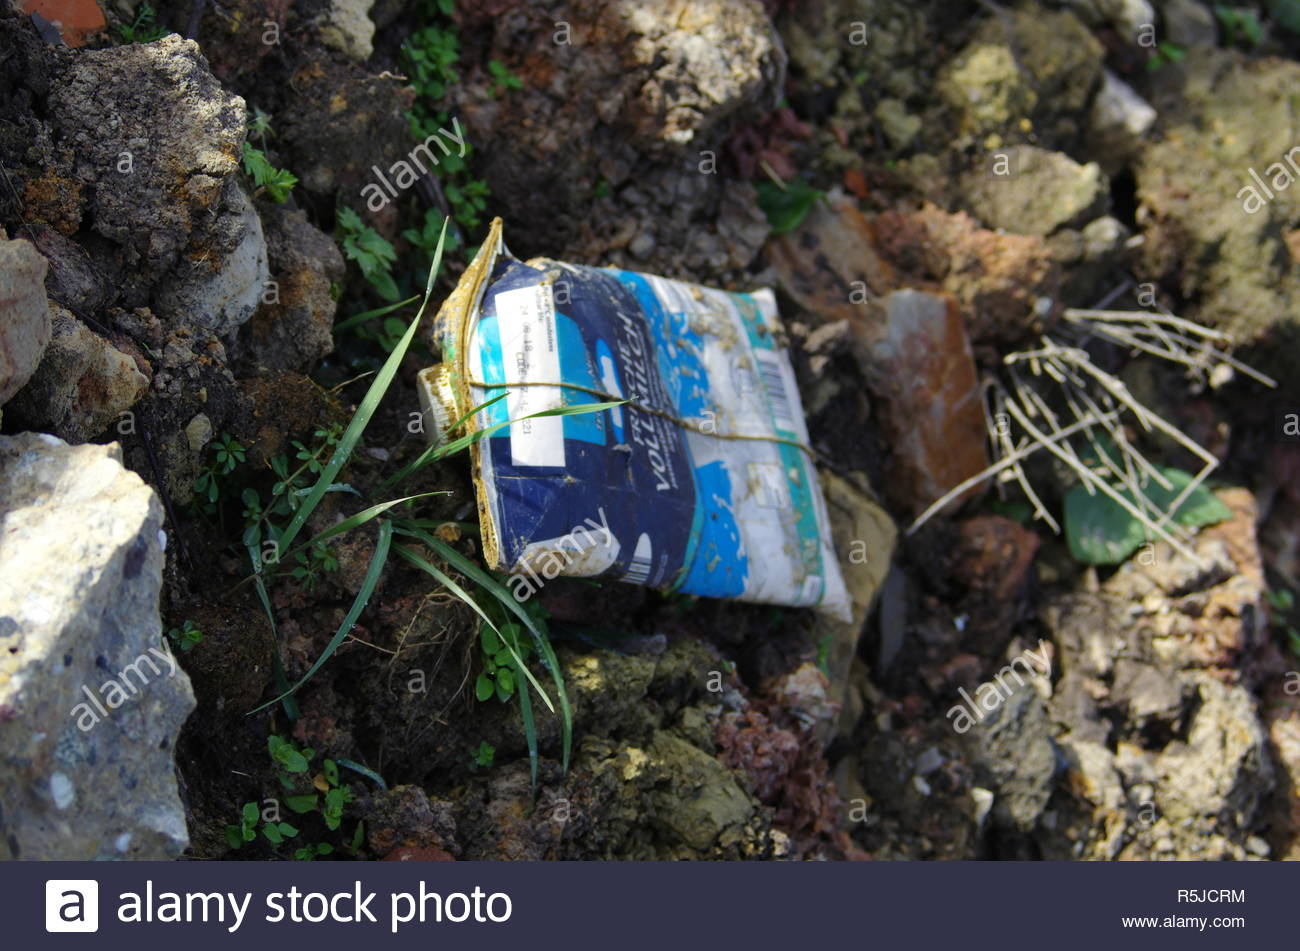 The forgotten garbage in the green meadow - Stock Image